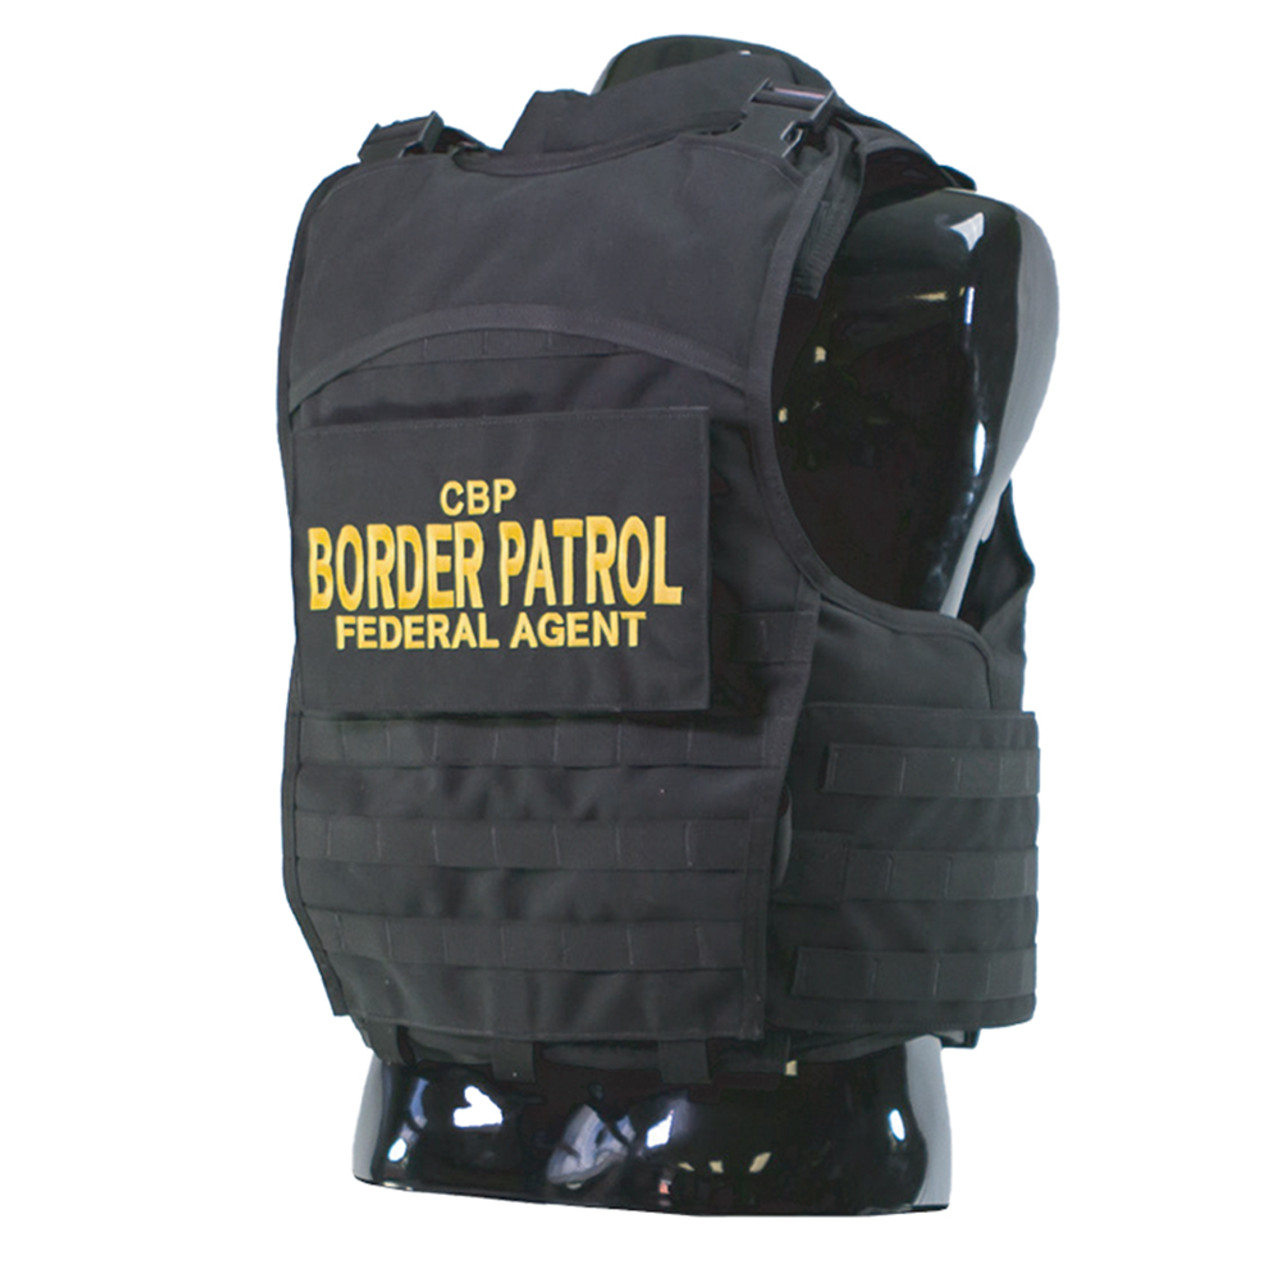 Armor Express DHS TOGC Female Overt Ballistic Body Armor Carrier with Concealeable drag handle located on rear of carrier, Choose Carrier Only or Carrier and Plates, NIJ Certified - Level II, Or Level III A Threat Levels